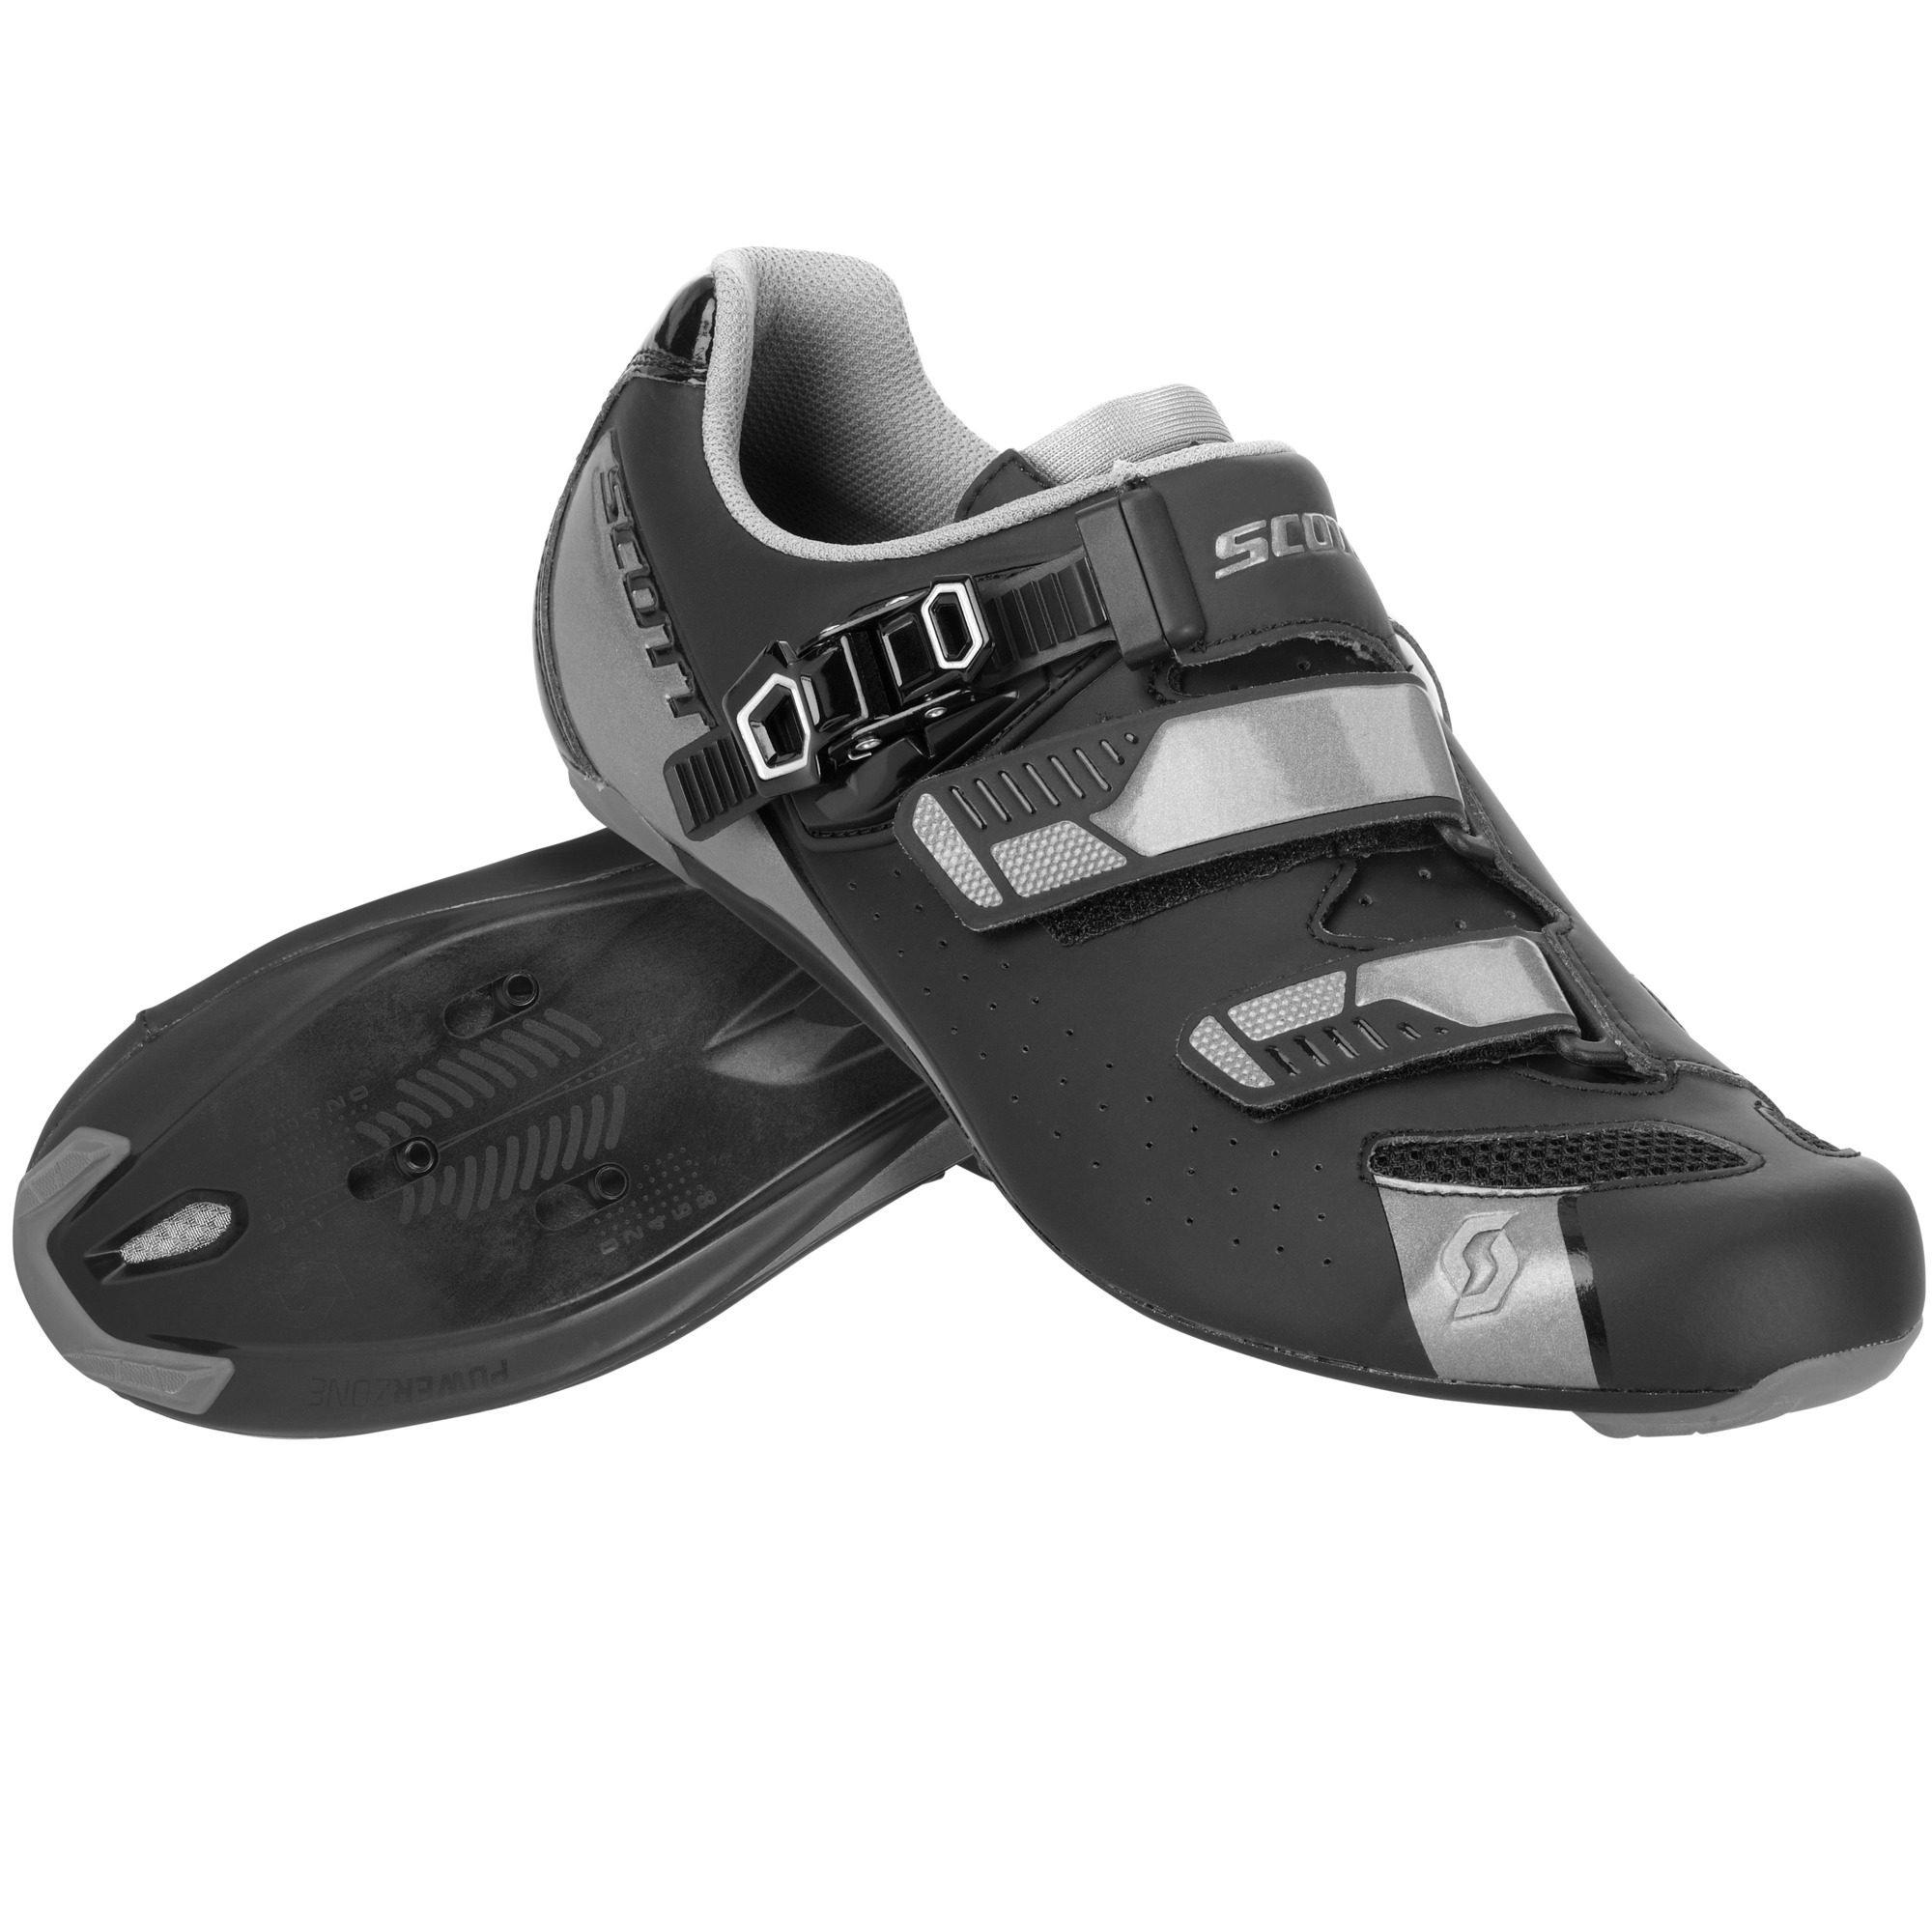 Chaussures Road Pro Scott Chaussures Road Pro Scott oQreWdCxB